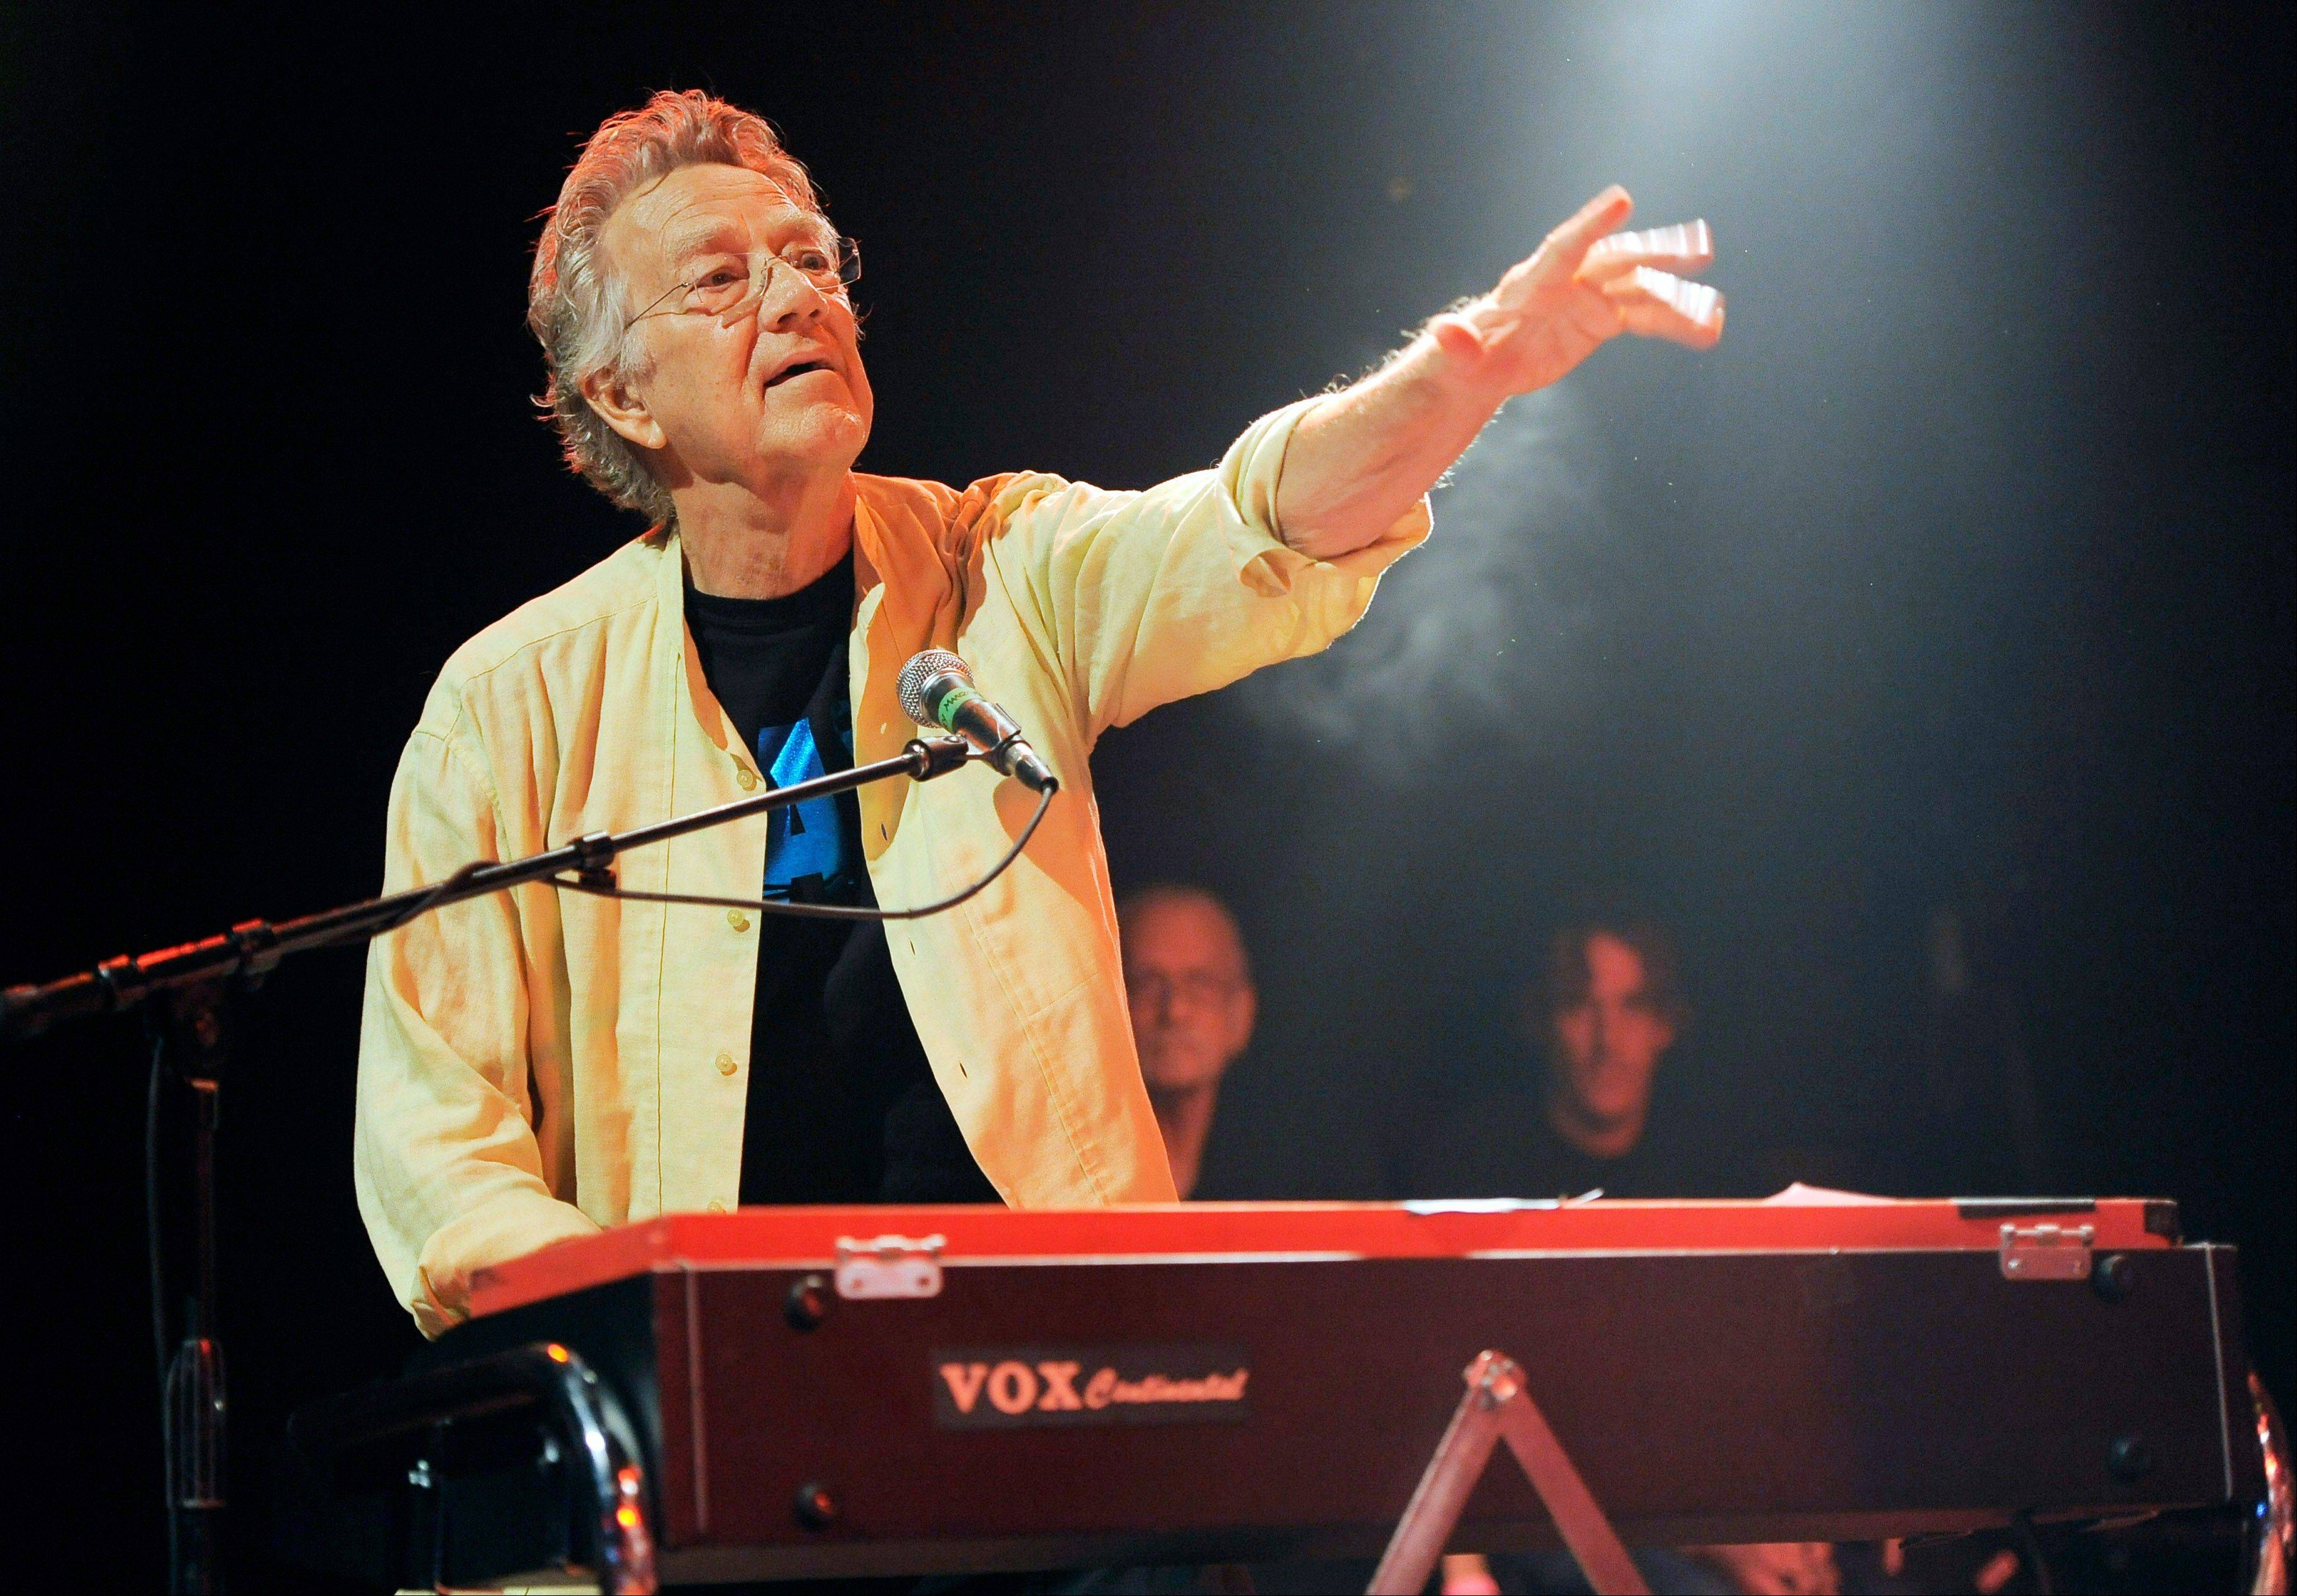 Ray Manzarek, the keyboardist who was a founding member of The Doors, has died at 74.